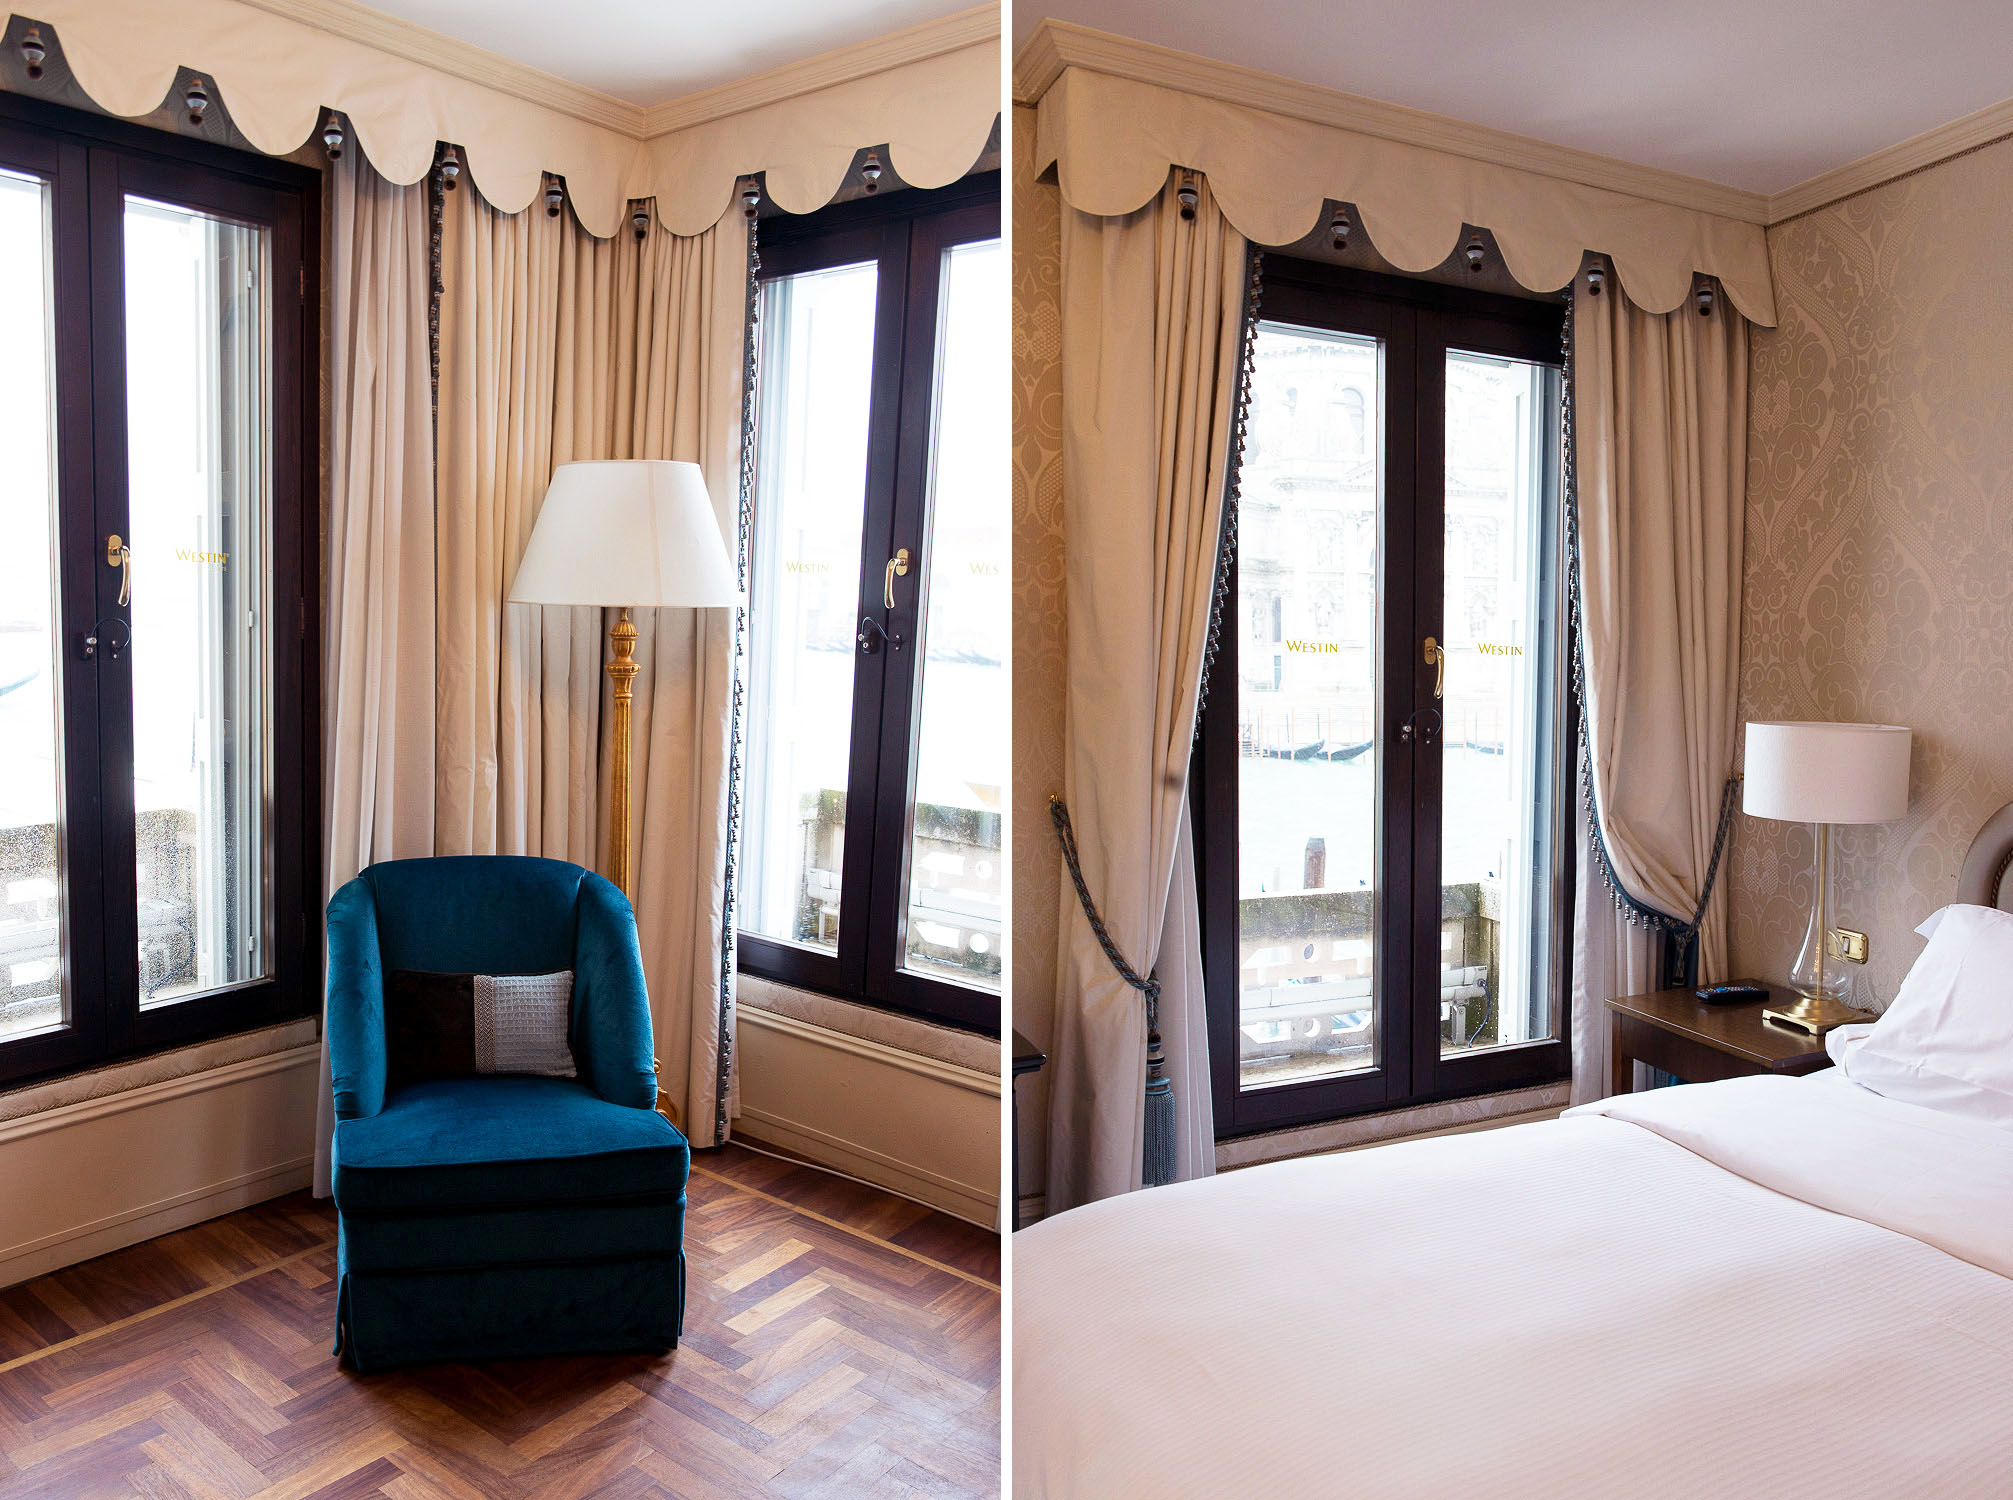 Westin Hotels & Resorts - Westin Europa and Regina in Venice